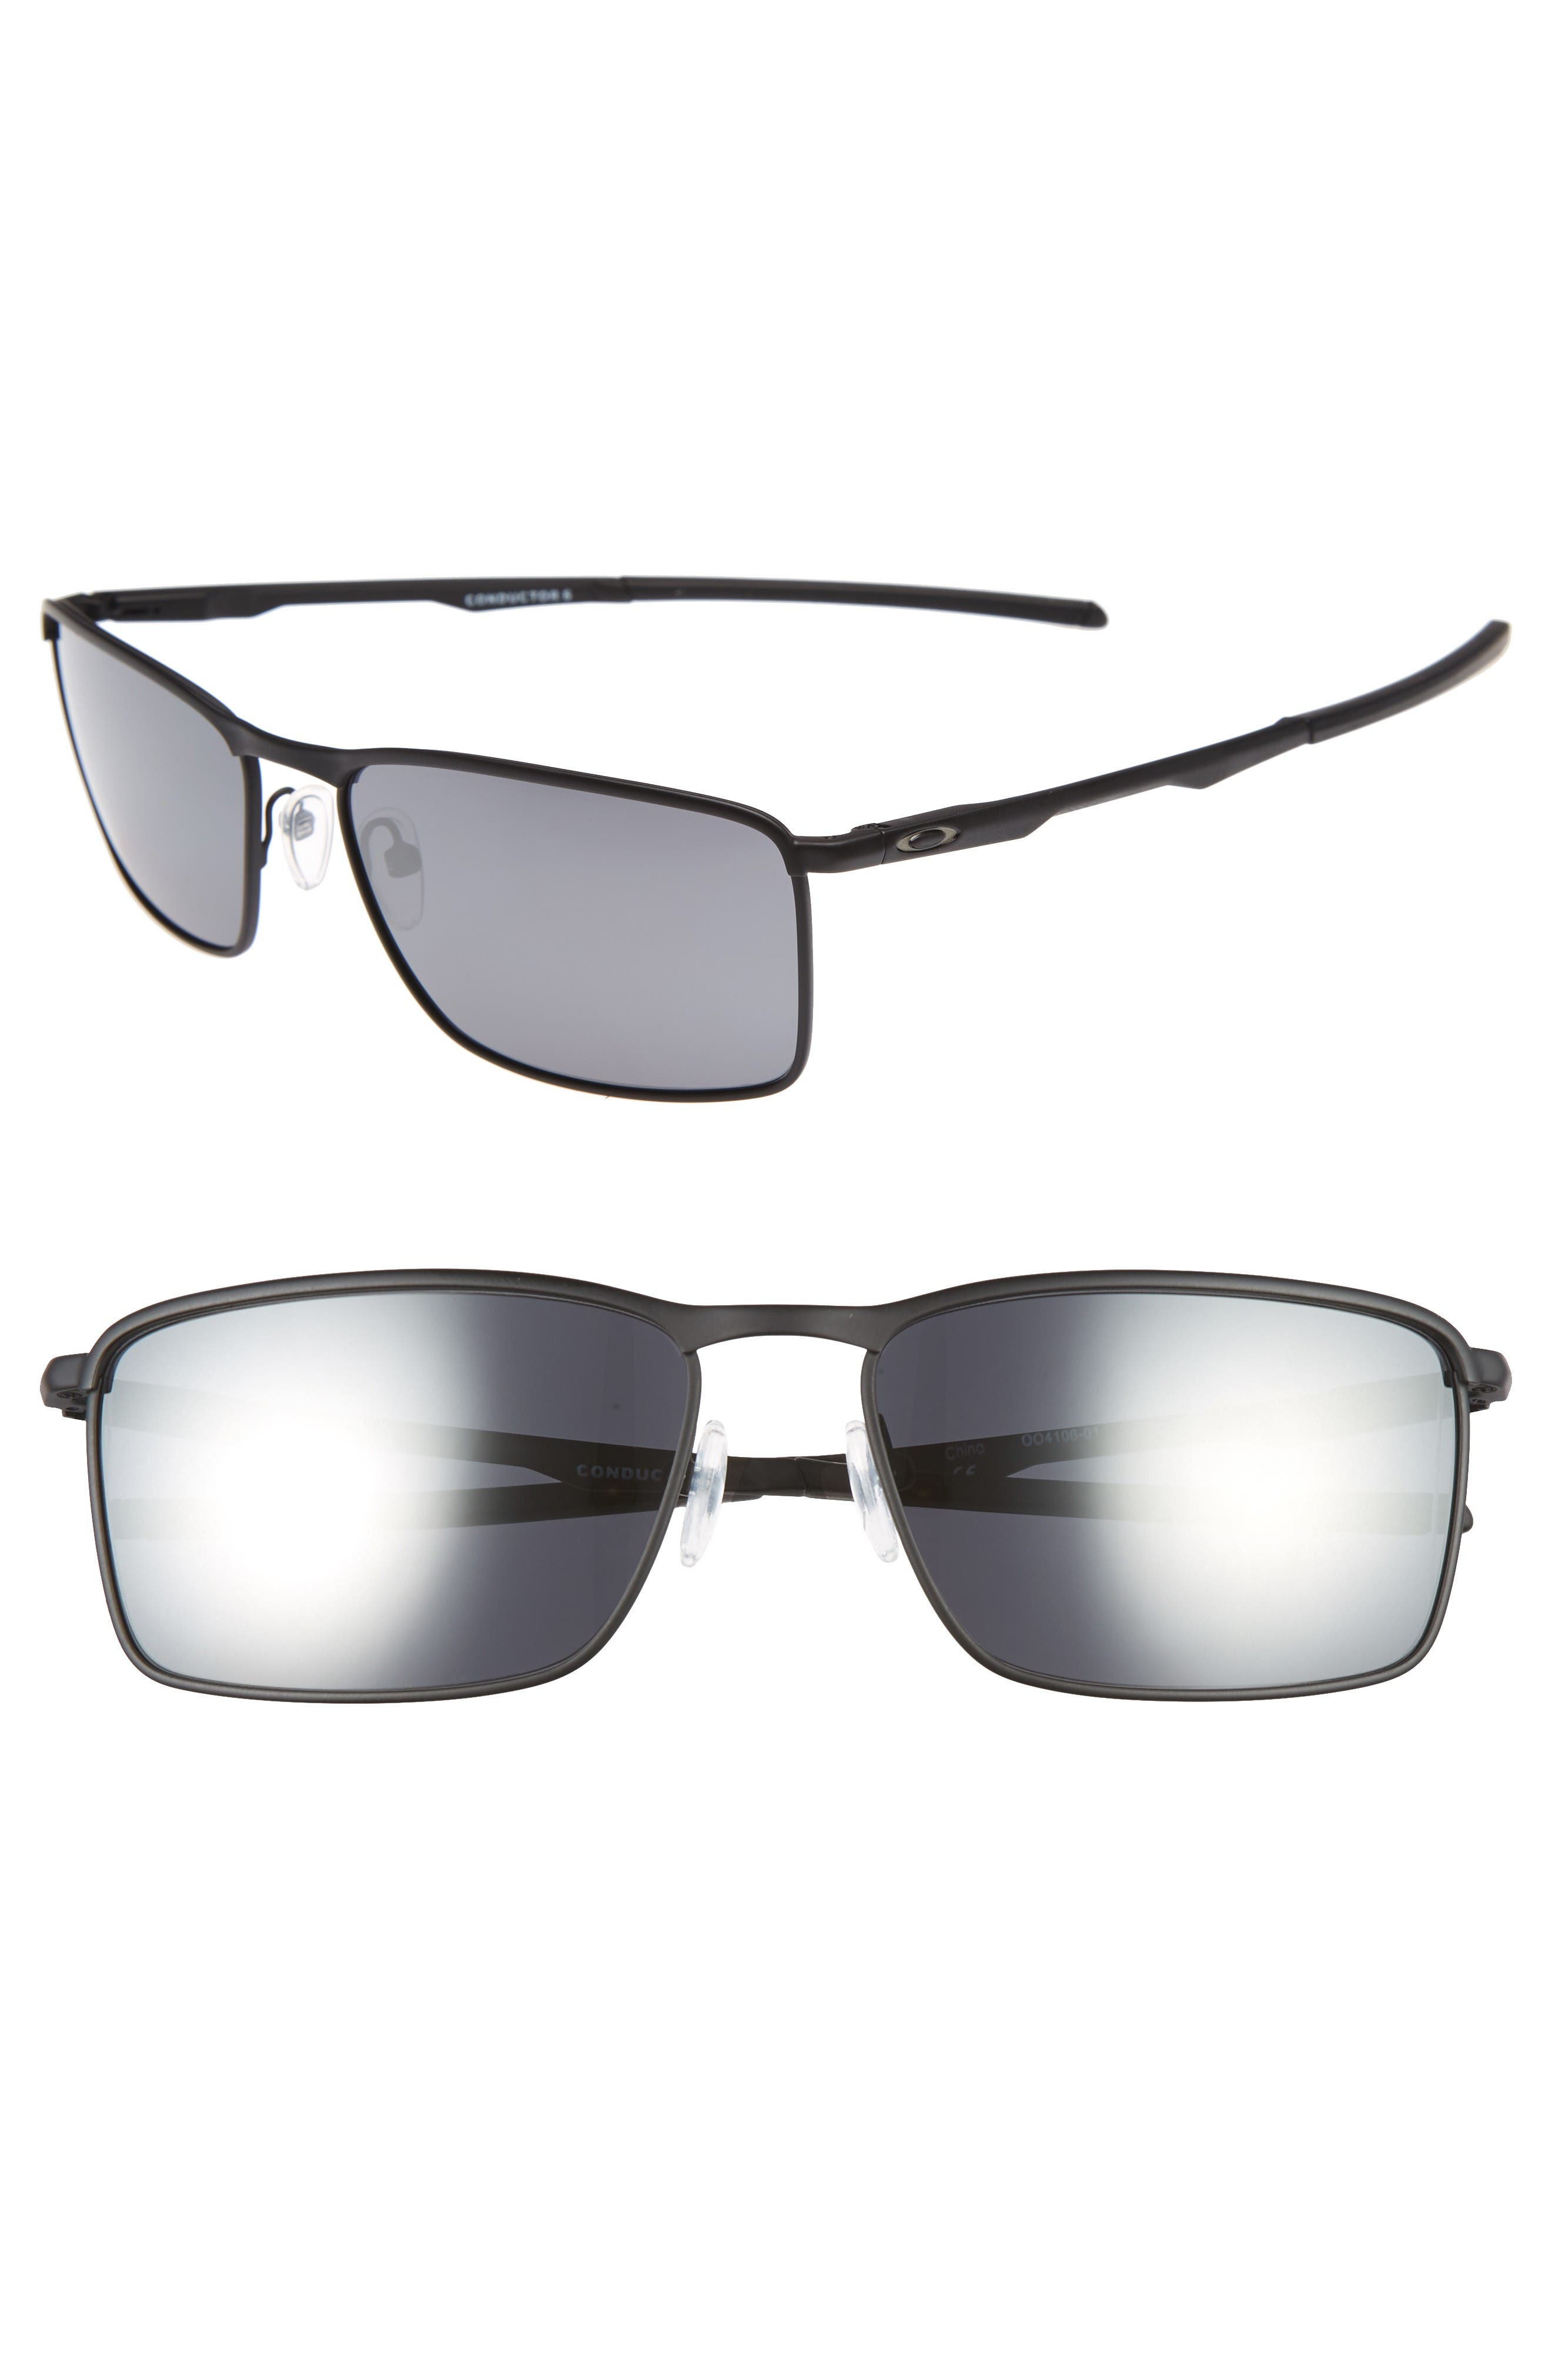 2b4847f2f81 Oakley Conductor 6 58Mm Polarized Sunglasses - Black